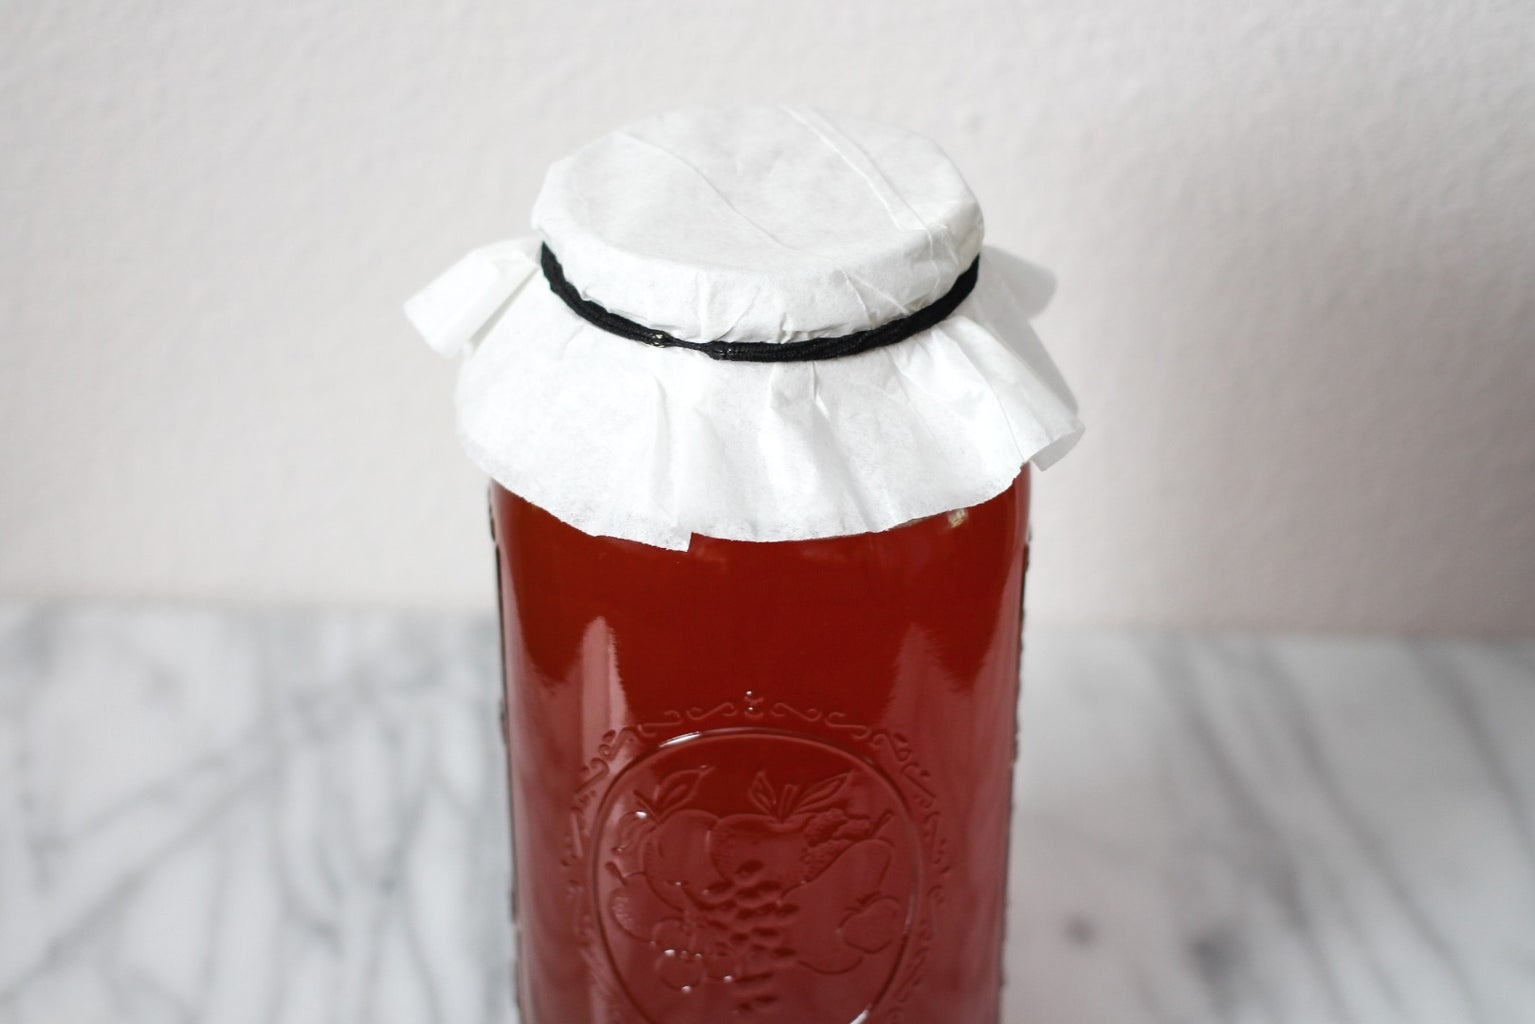 Cover the Canning Jar and Place It in a Dark Warm Location